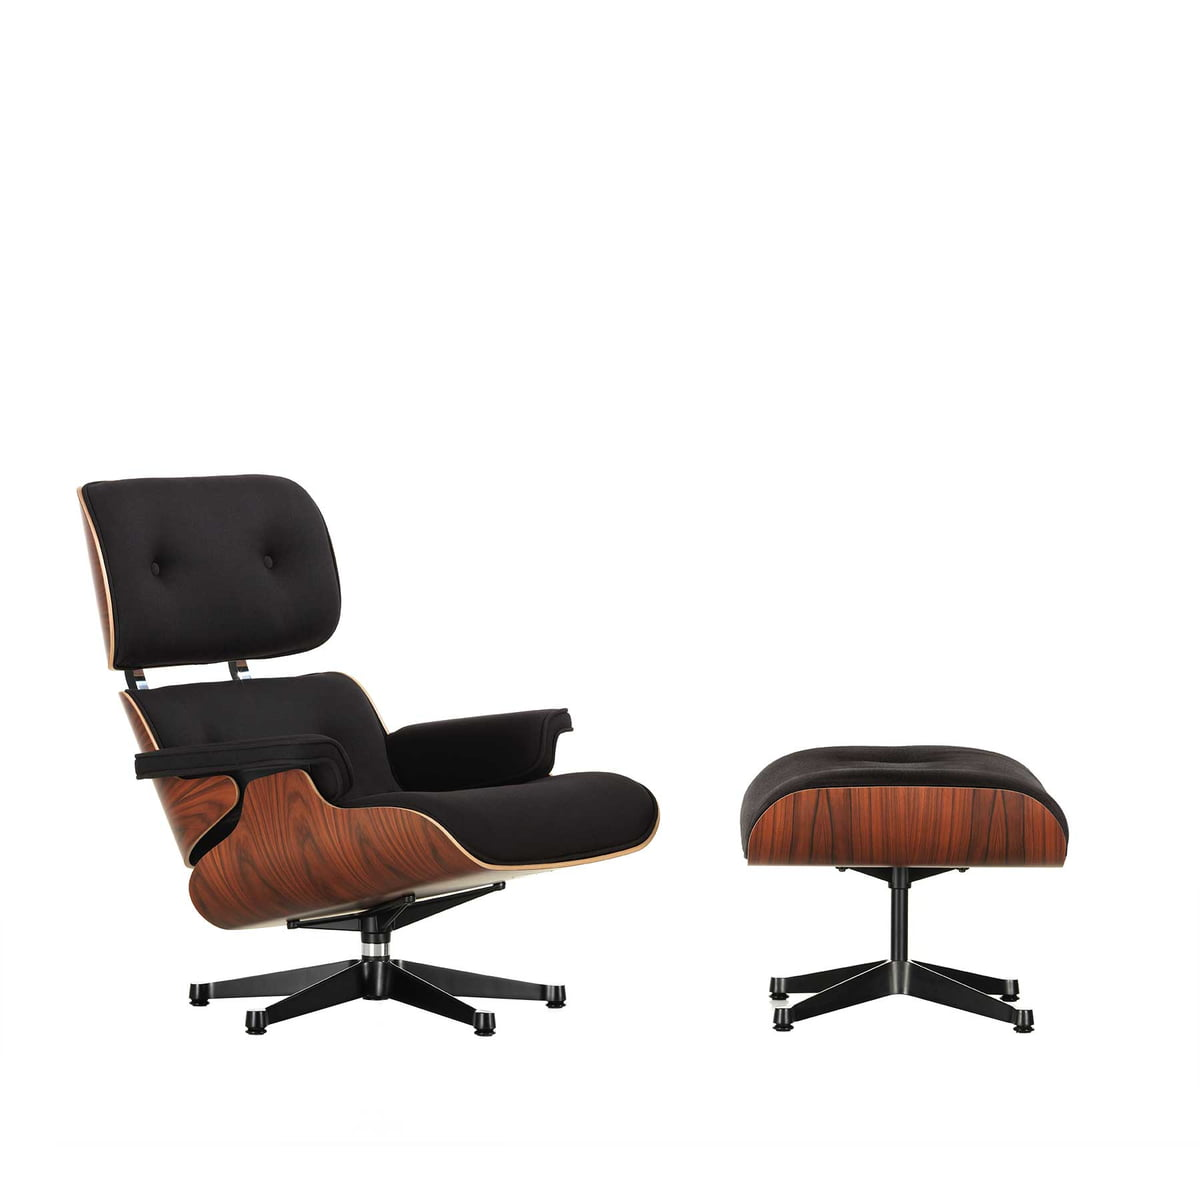 Lounge Chair By Vitra As Limited Edition